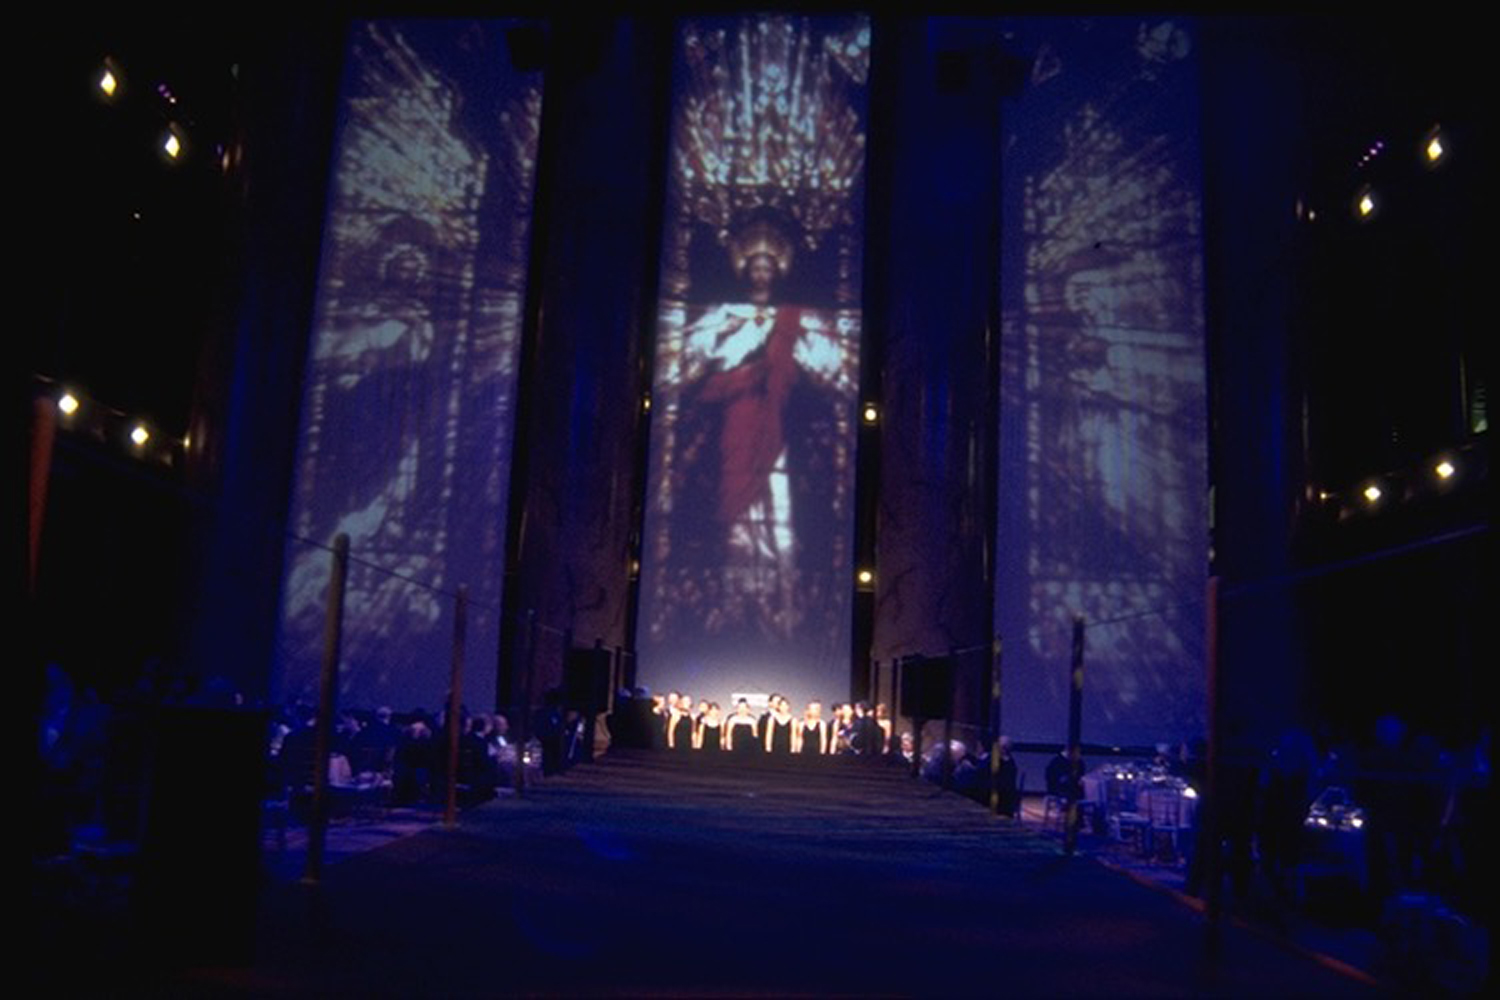 Georgetown University -  Million dollar donor celebration - Museum of Building, Washington DC - Large format rear projection screens between existing venue columns, showing Georgetown's Chapel stained glass windows.